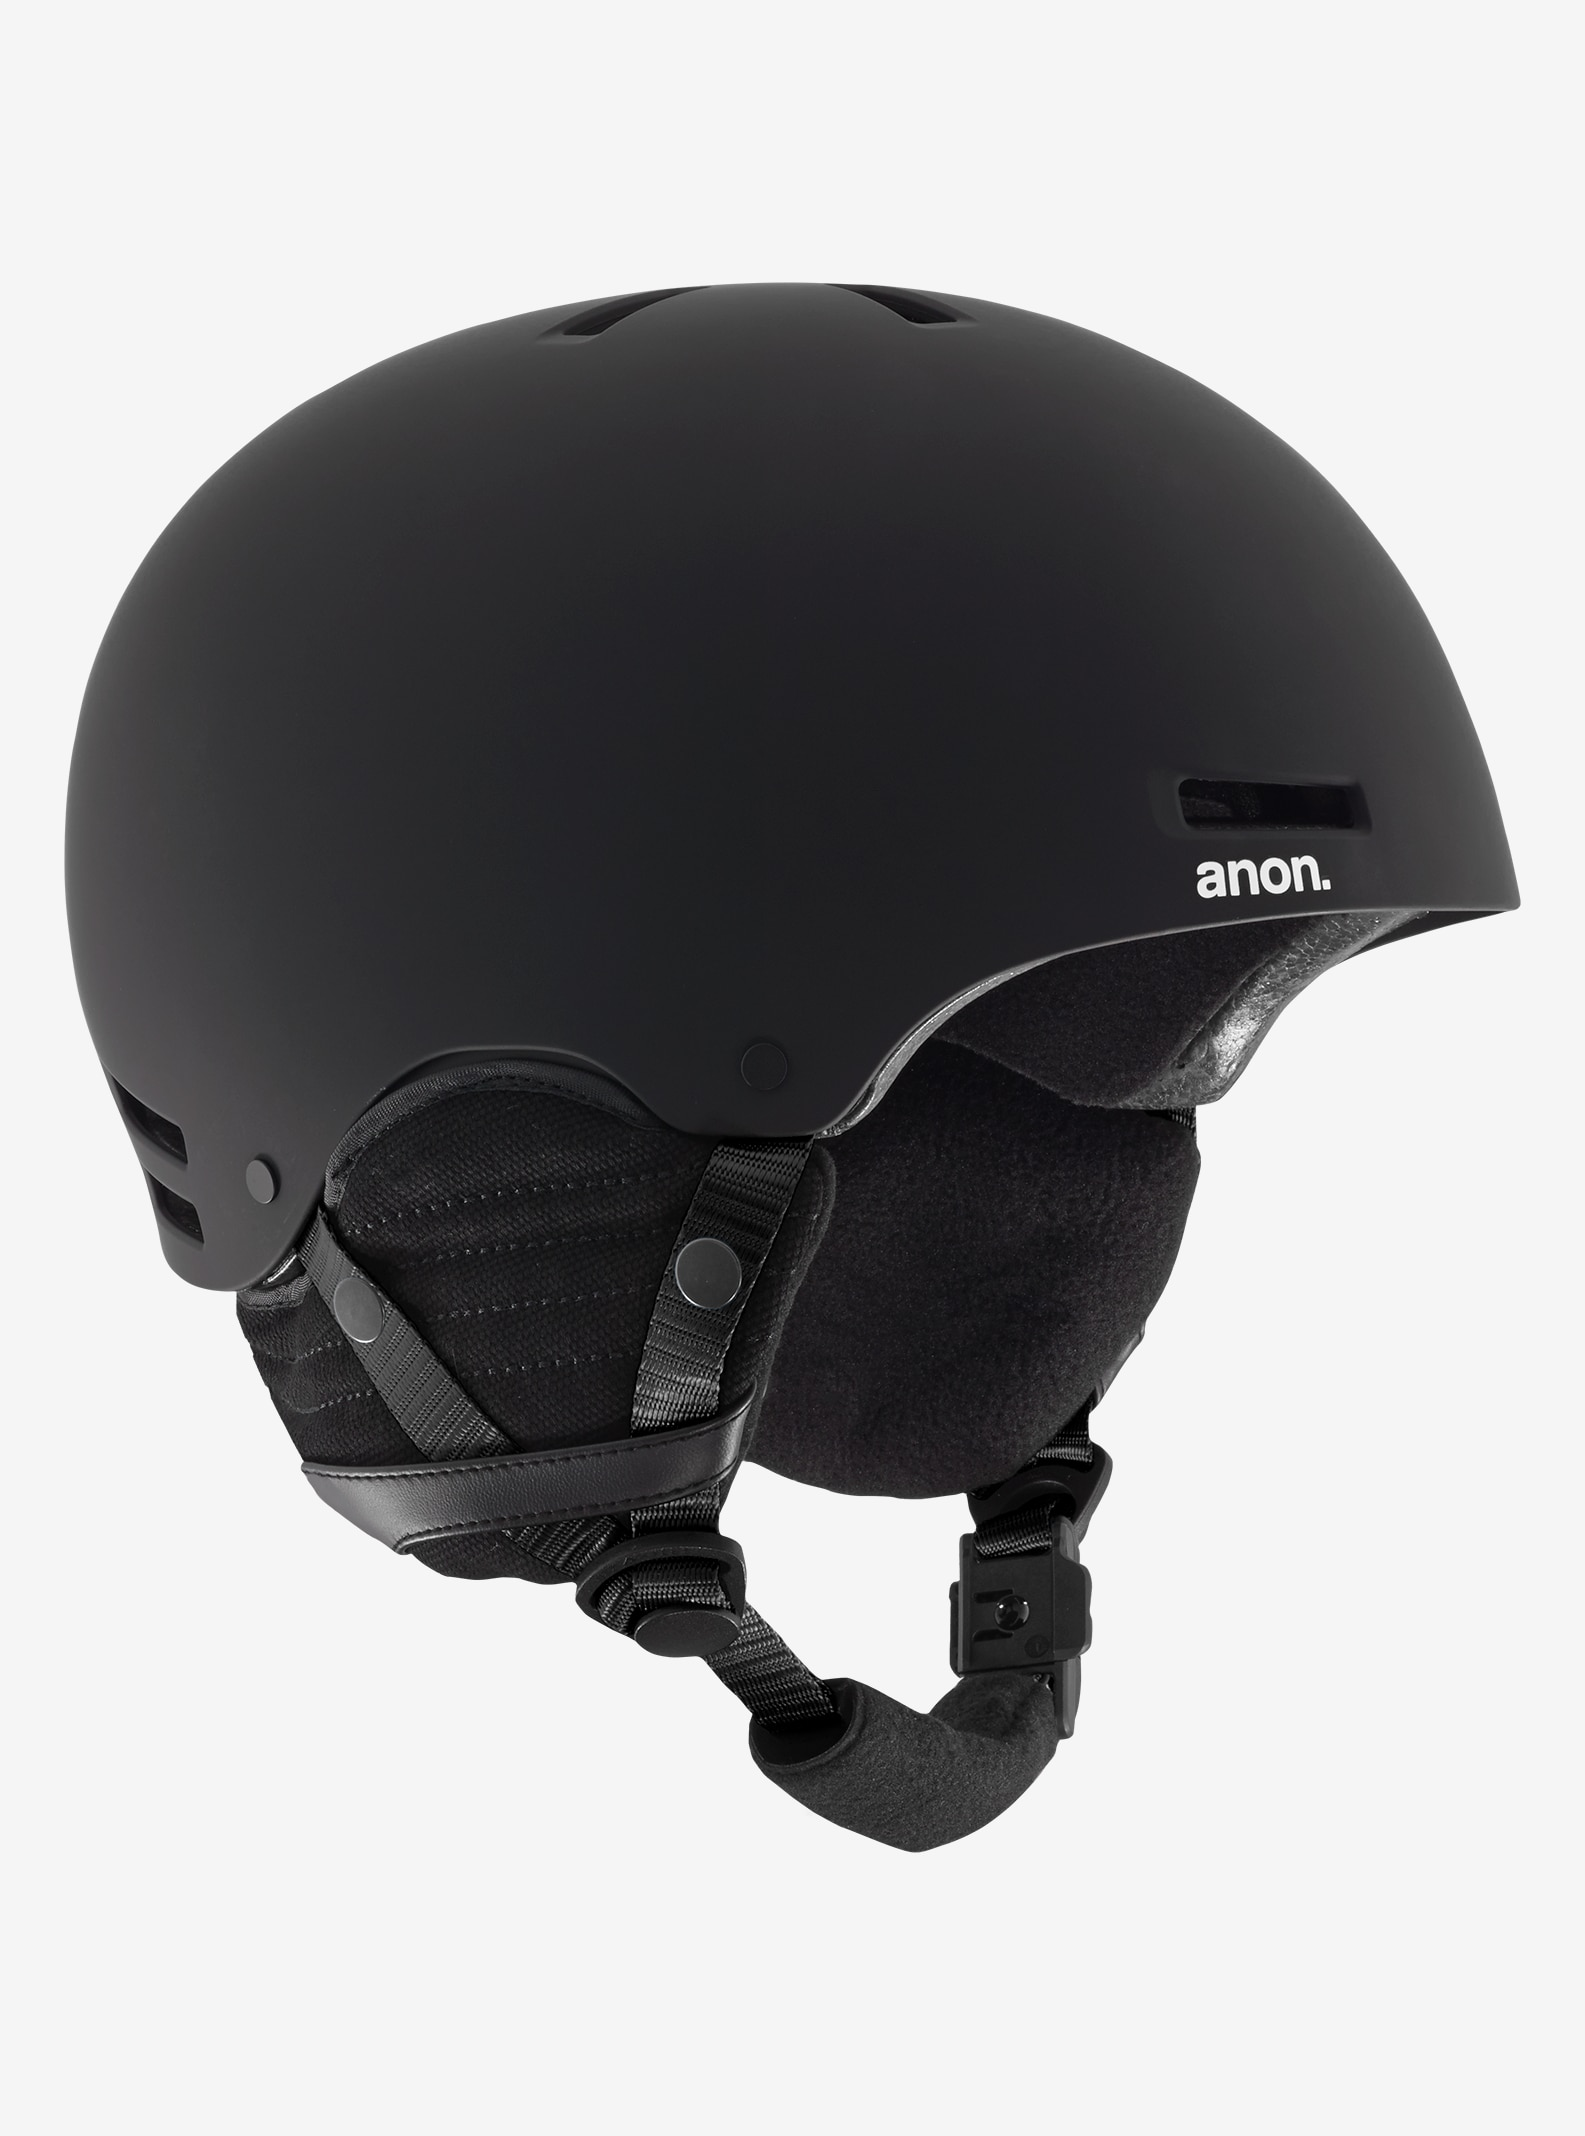 Kids' Anon Rime Helmet shown in Black